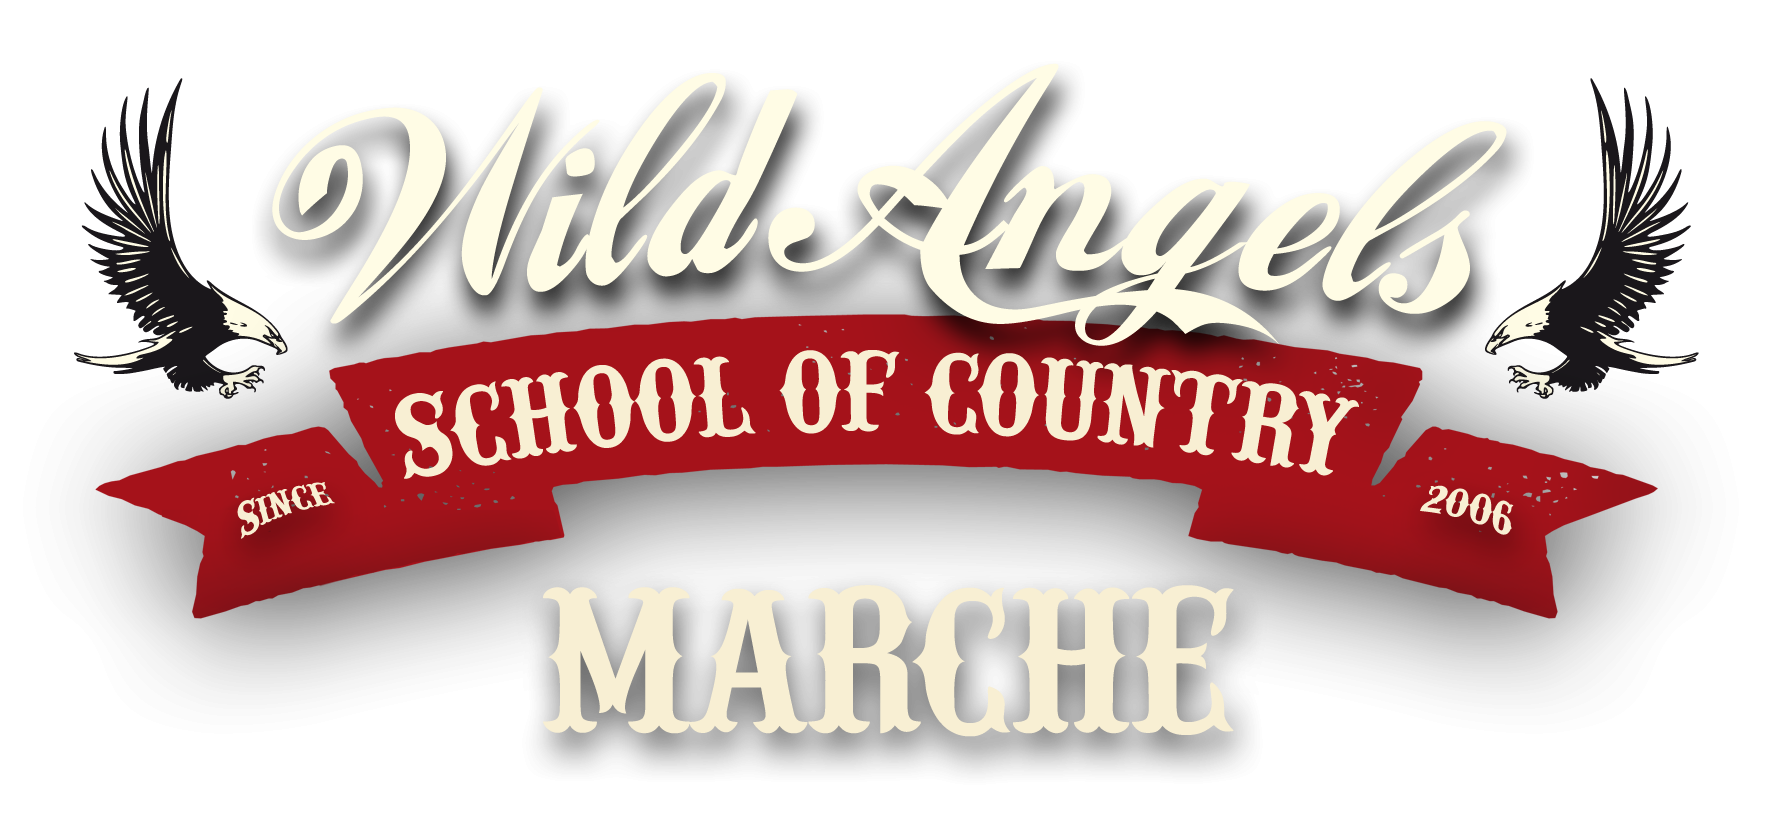 Wild Angels Scuola Country Marche